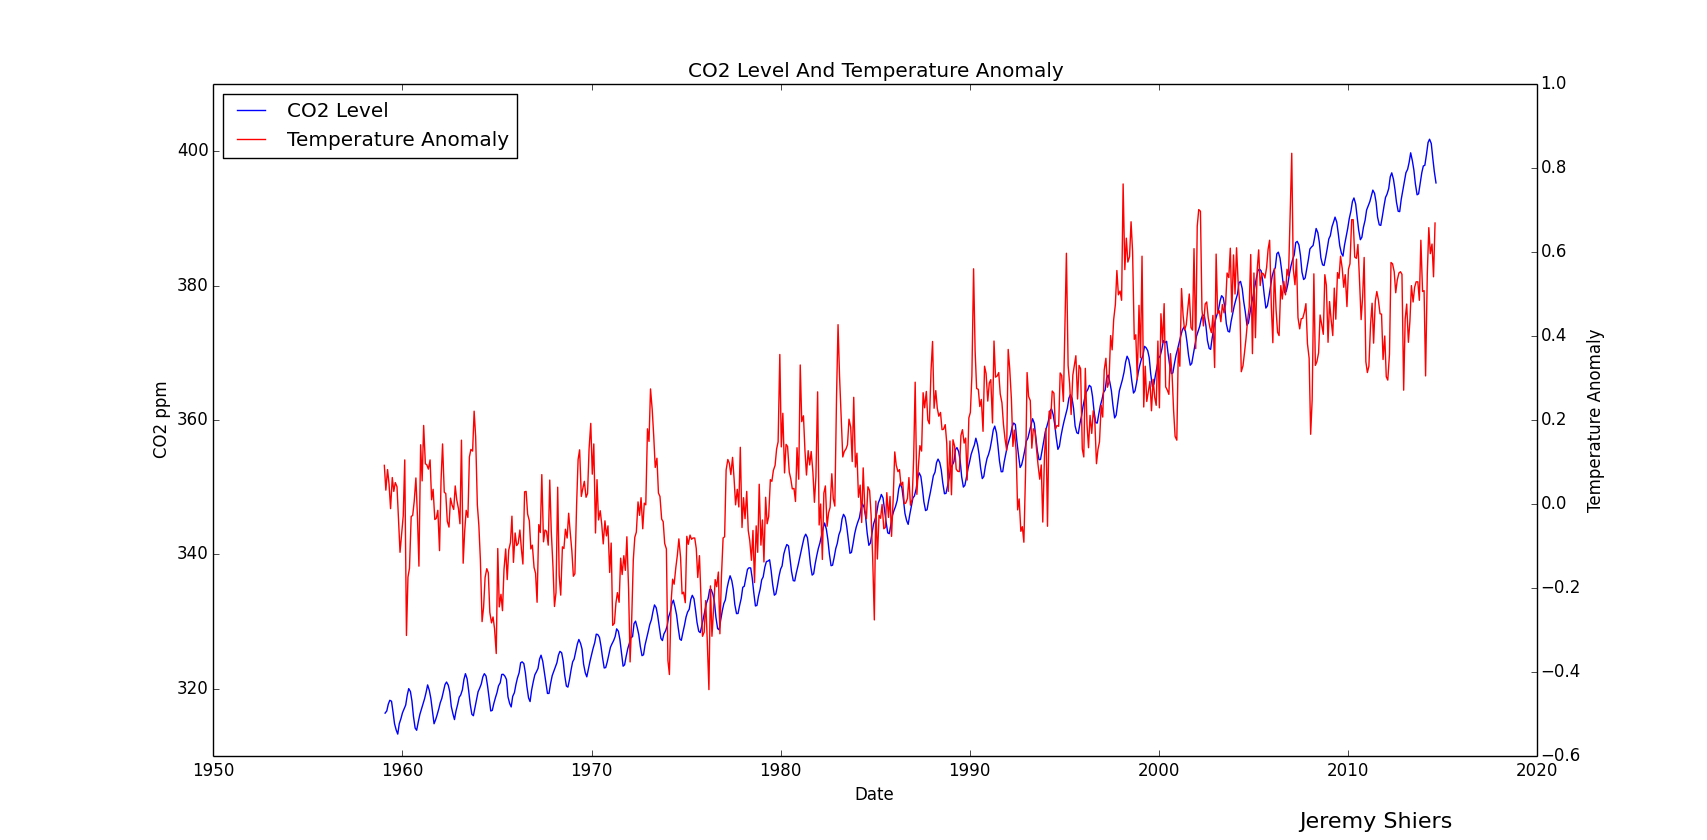 CO2 Level V Temperature